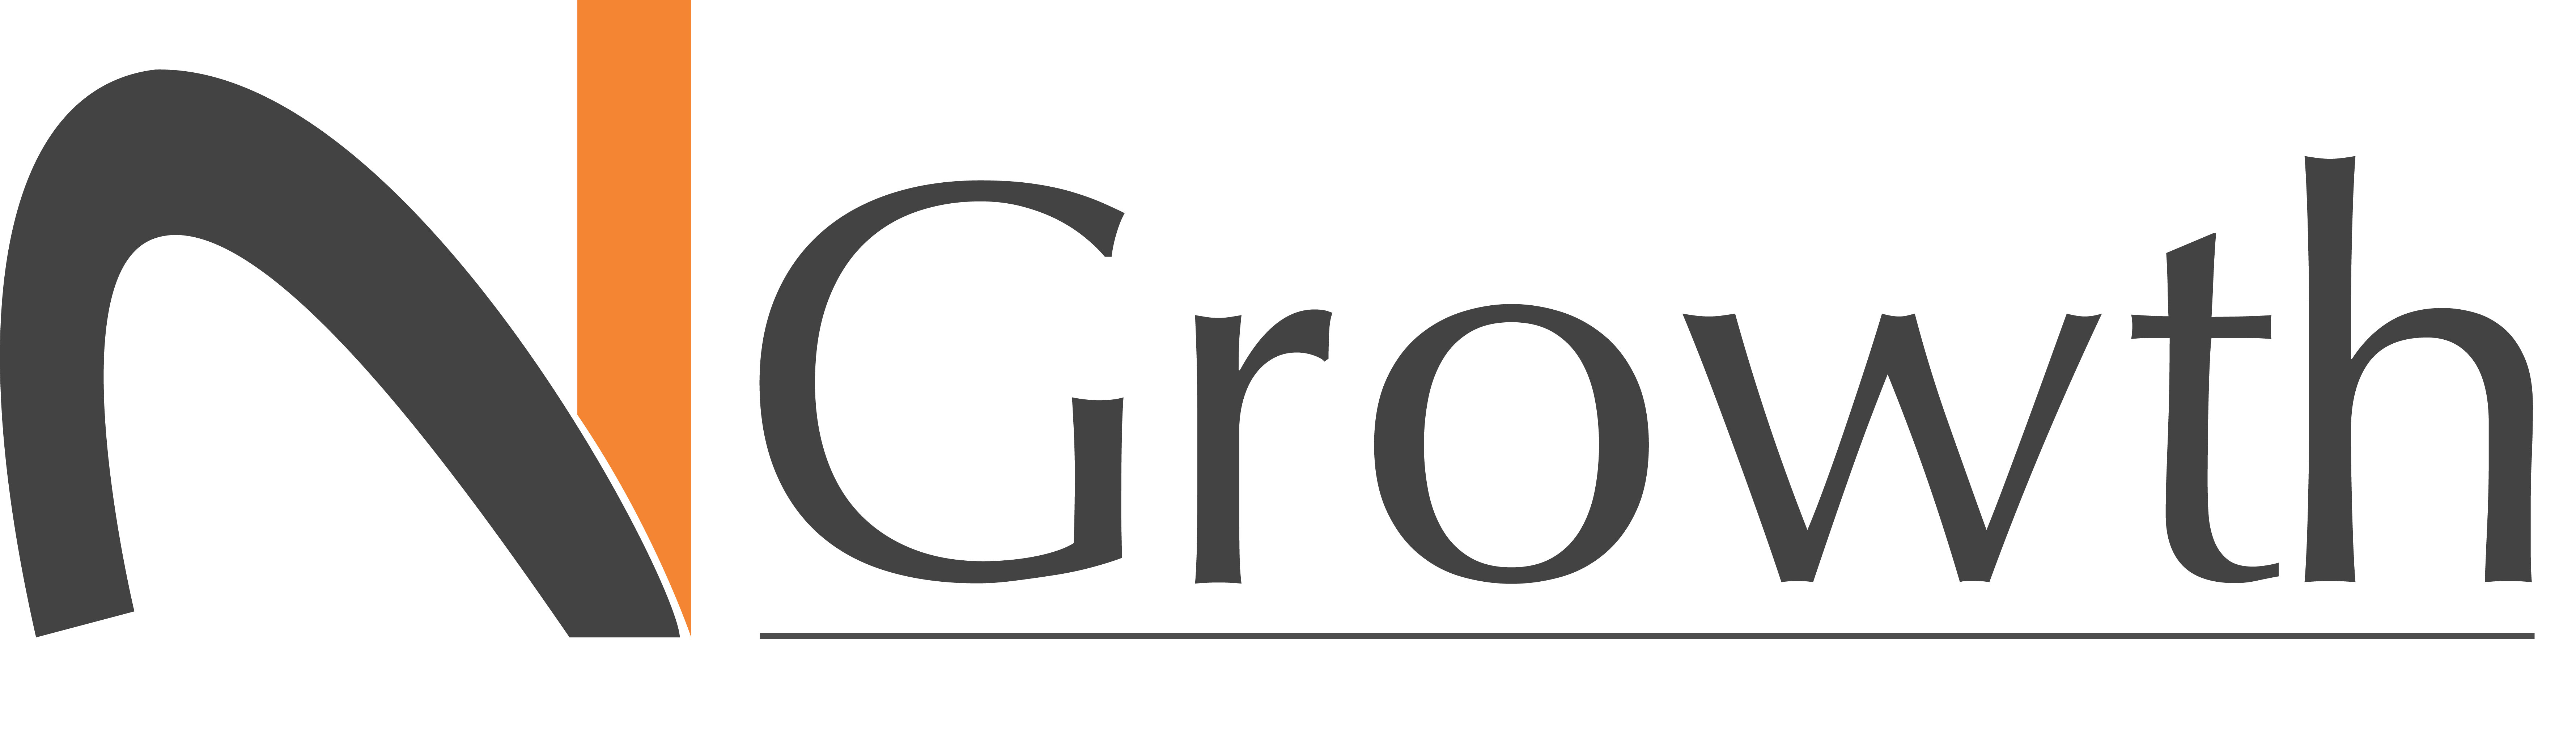 N2Growth, a Top Executive Search Firm, Appoints Kelli Vukelic as Chief Operating Officer